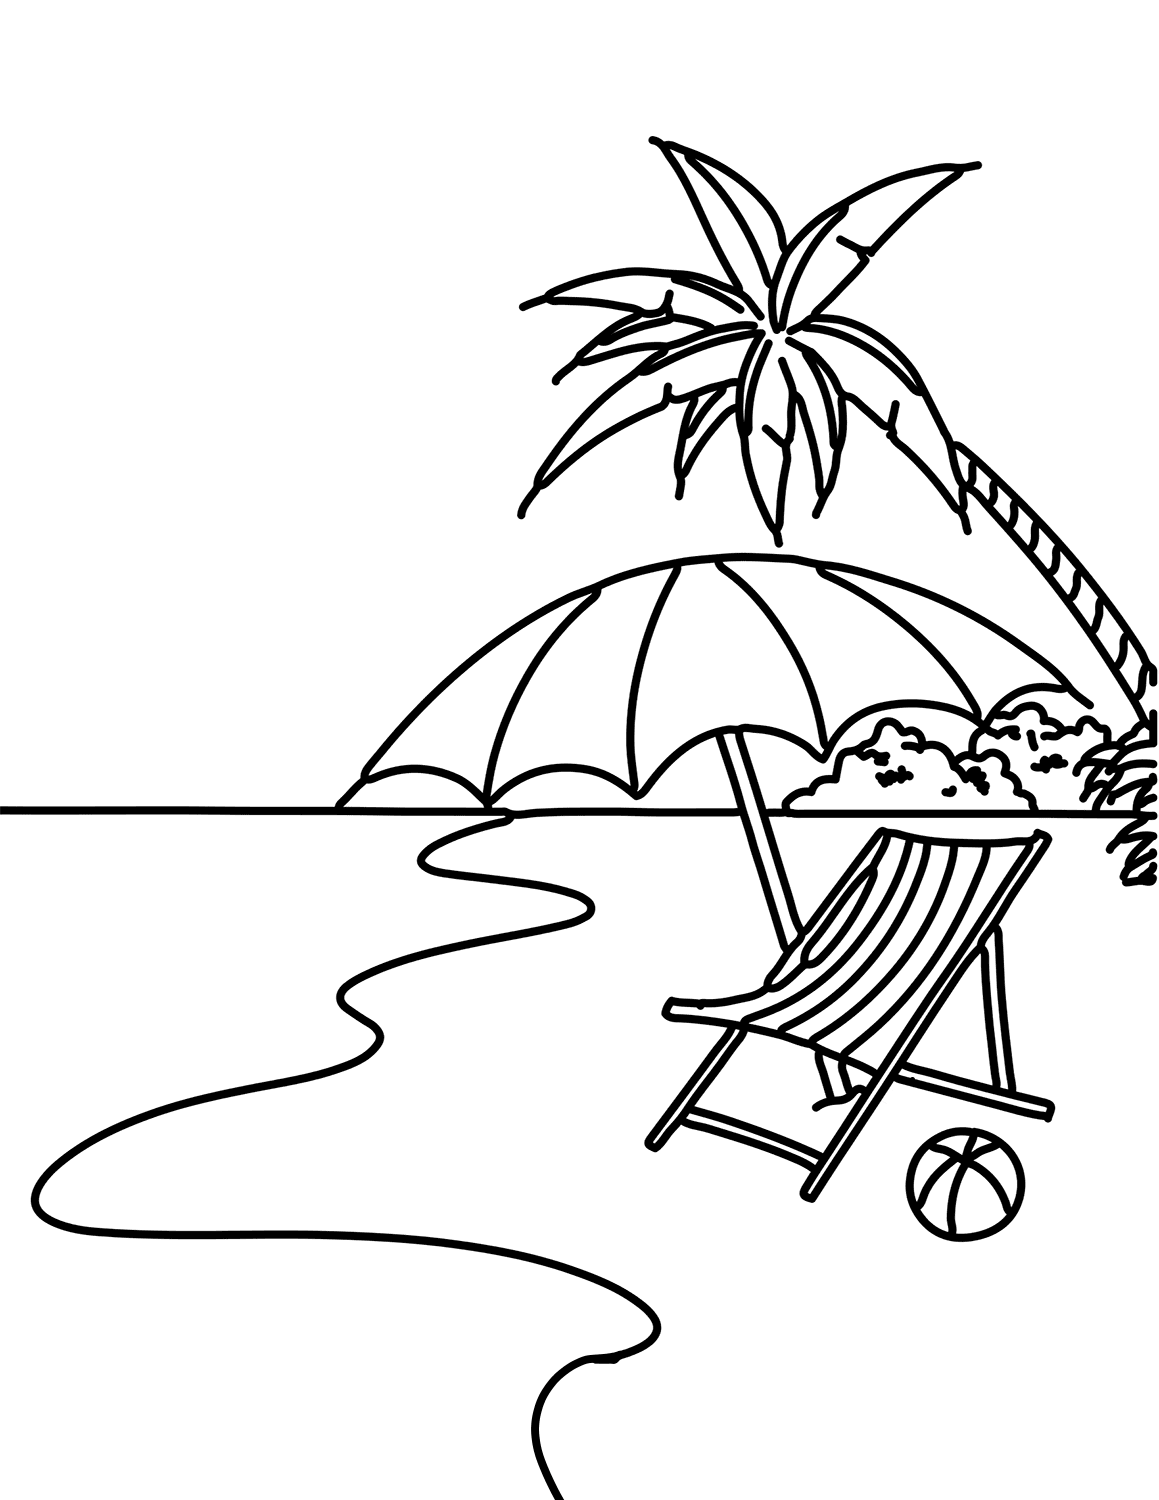 Coloring pages beach scenes